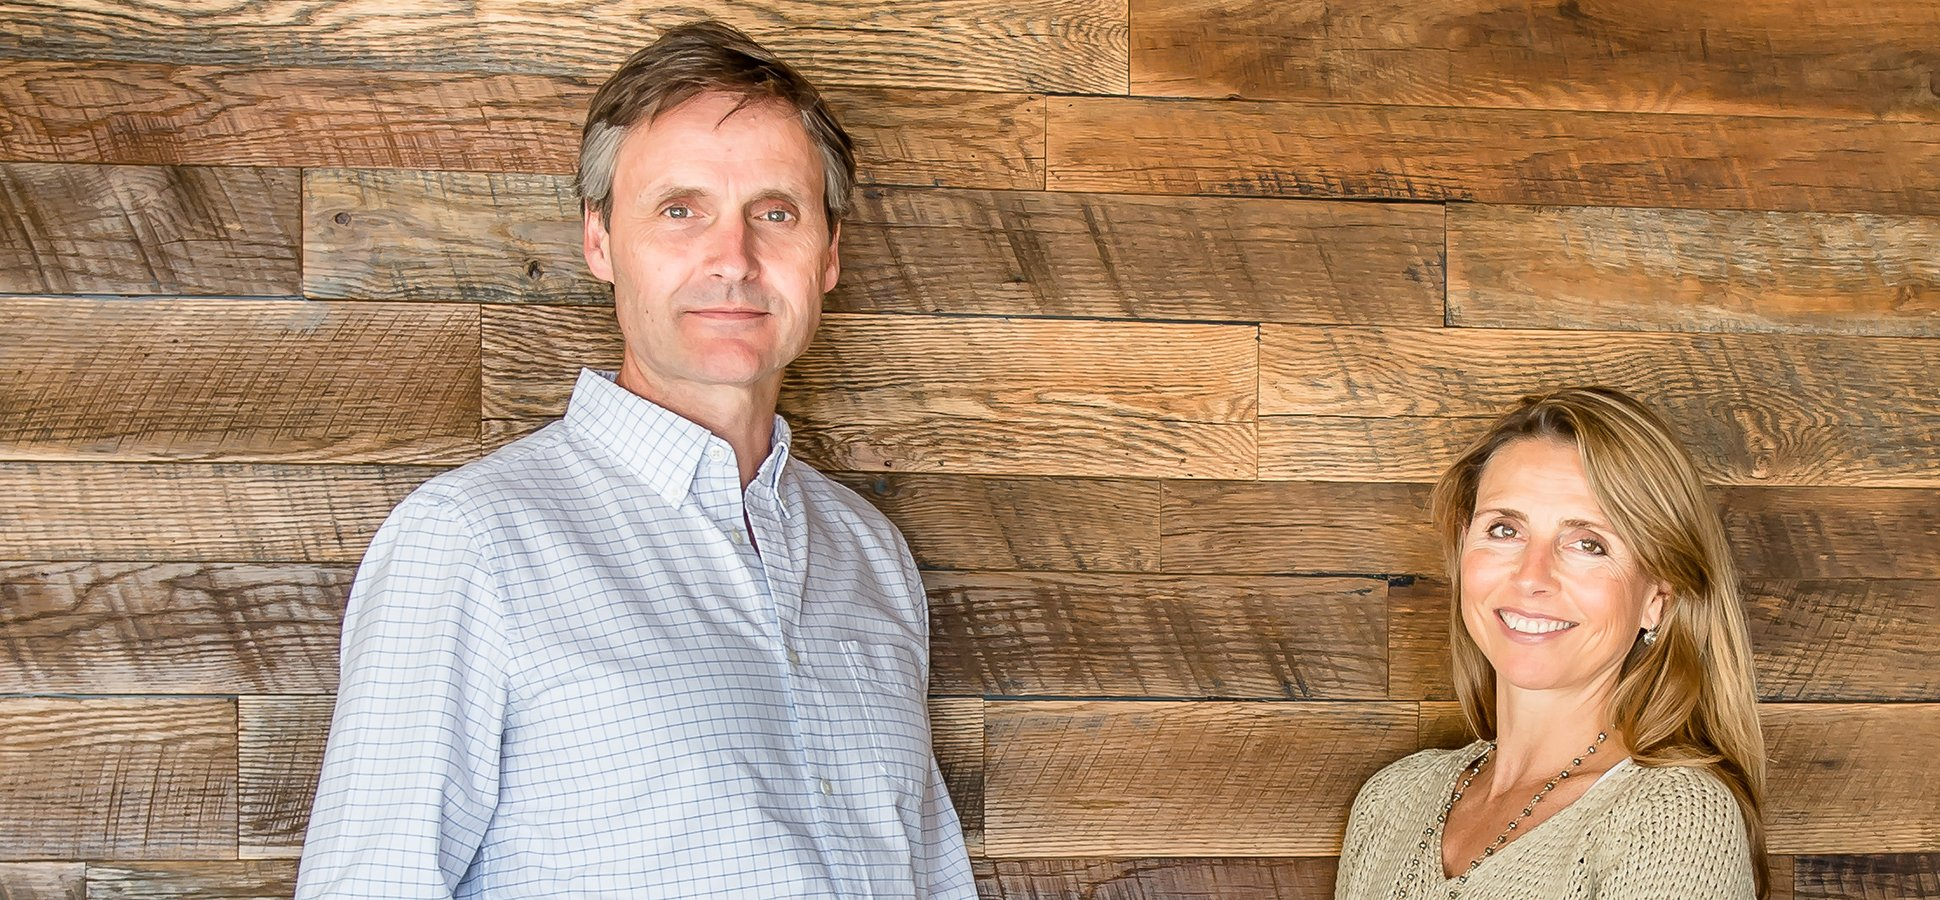 This Married Couple Sold Their Company to Starbucks for $90 Million, and Then Built a $131 Million Pizza Empire